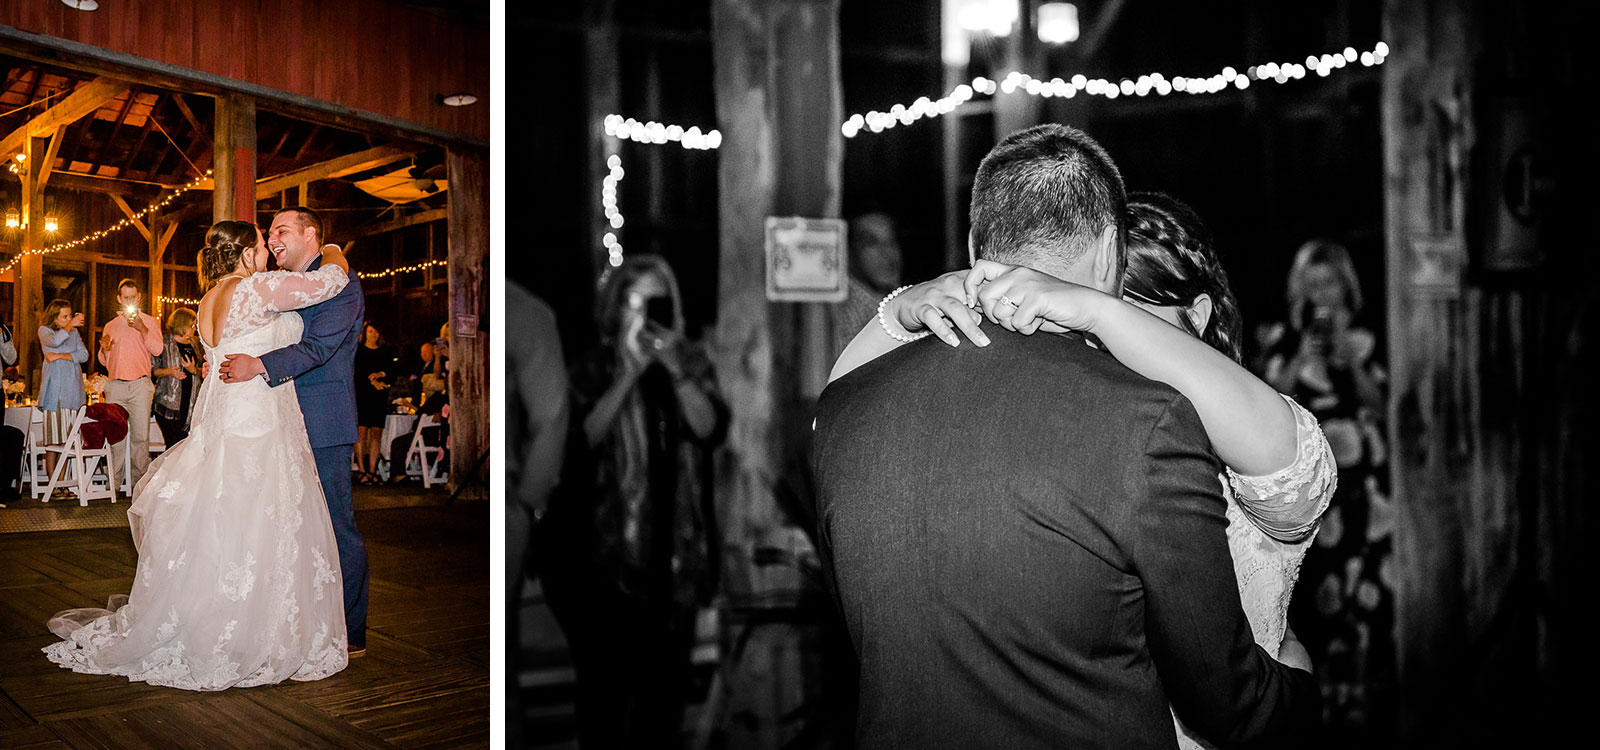 Eric_and_Christy_Photography_Blog_Wedding_Stacey_Geoff-64-65